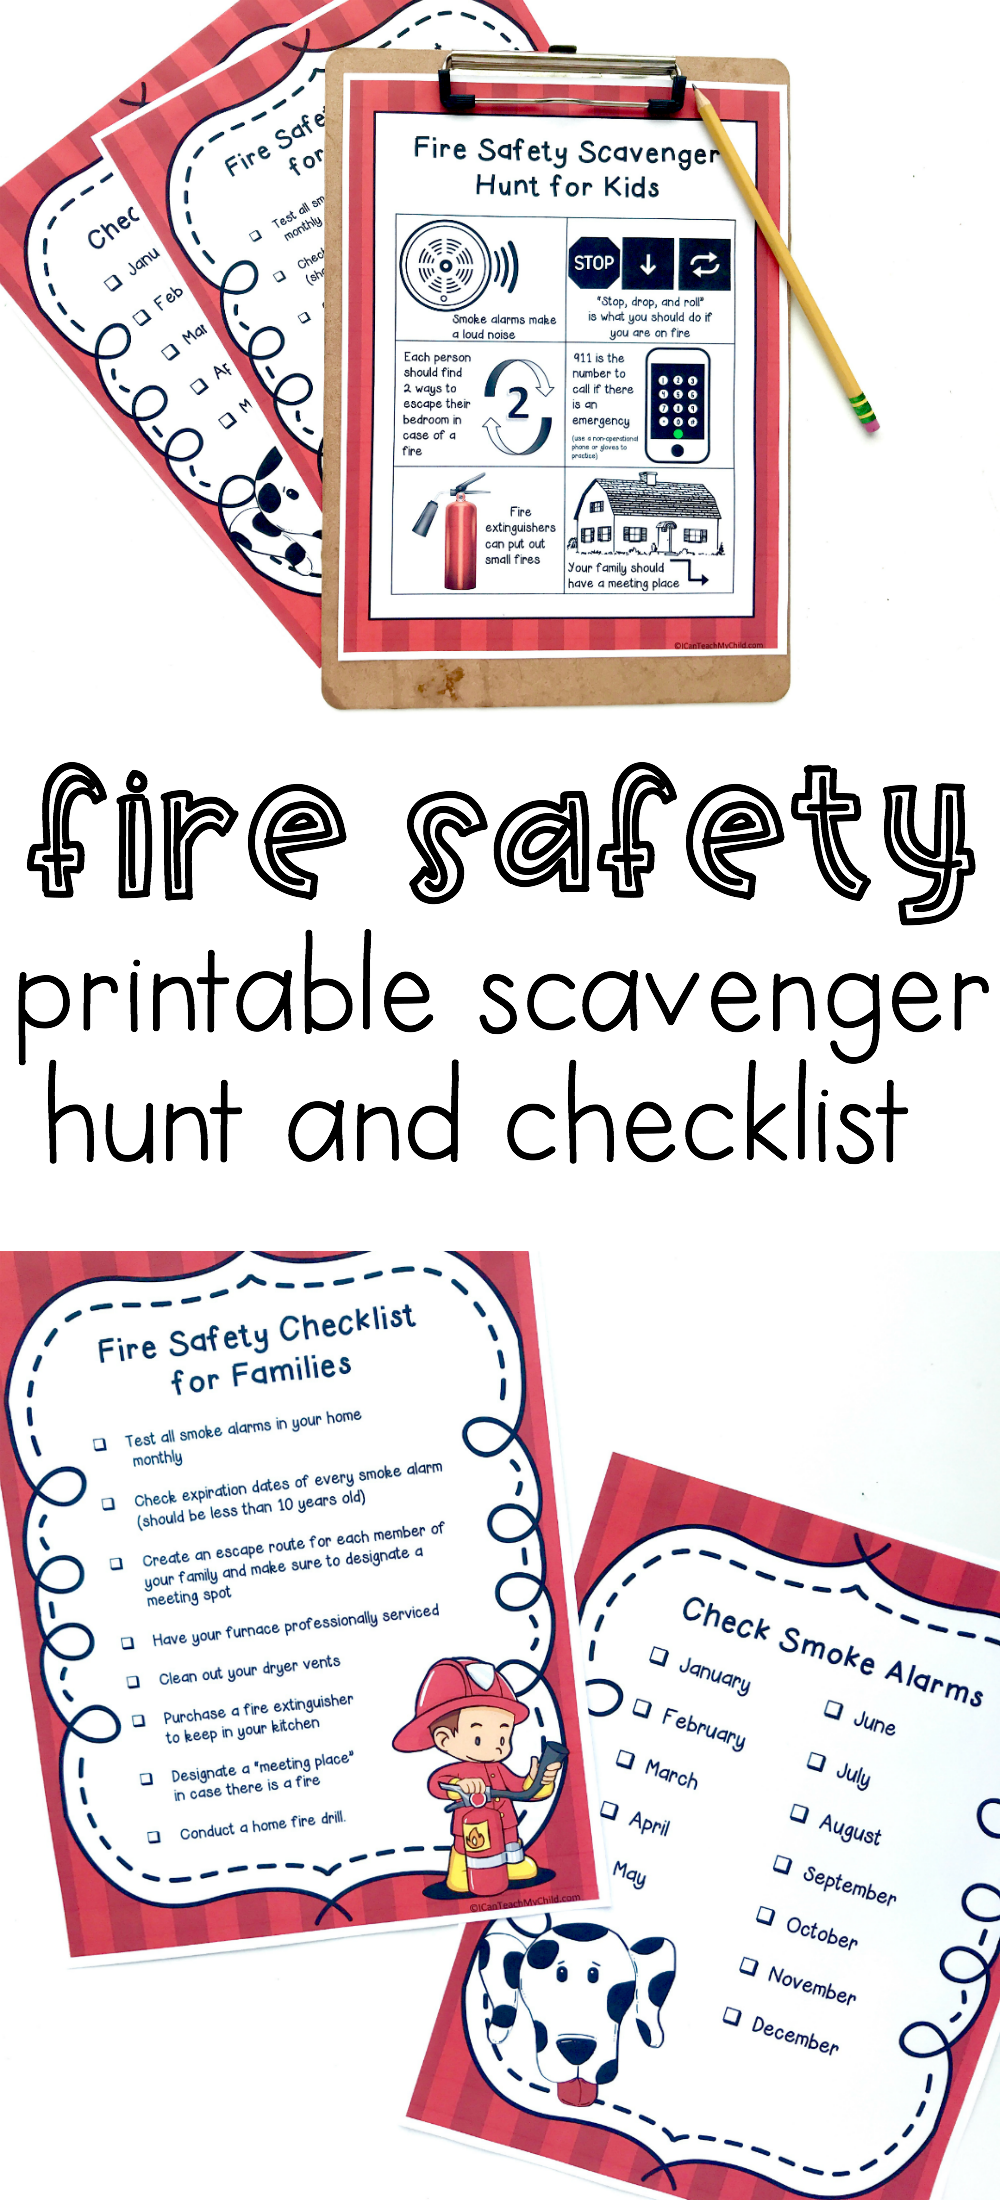 Fire Safety Checklist And Scavenger Hunt I Can Teach My Child Fire Safety Preschool Fire Prevention Week Fire Safety For Kids [ 2200 x 1000 Pixel ]